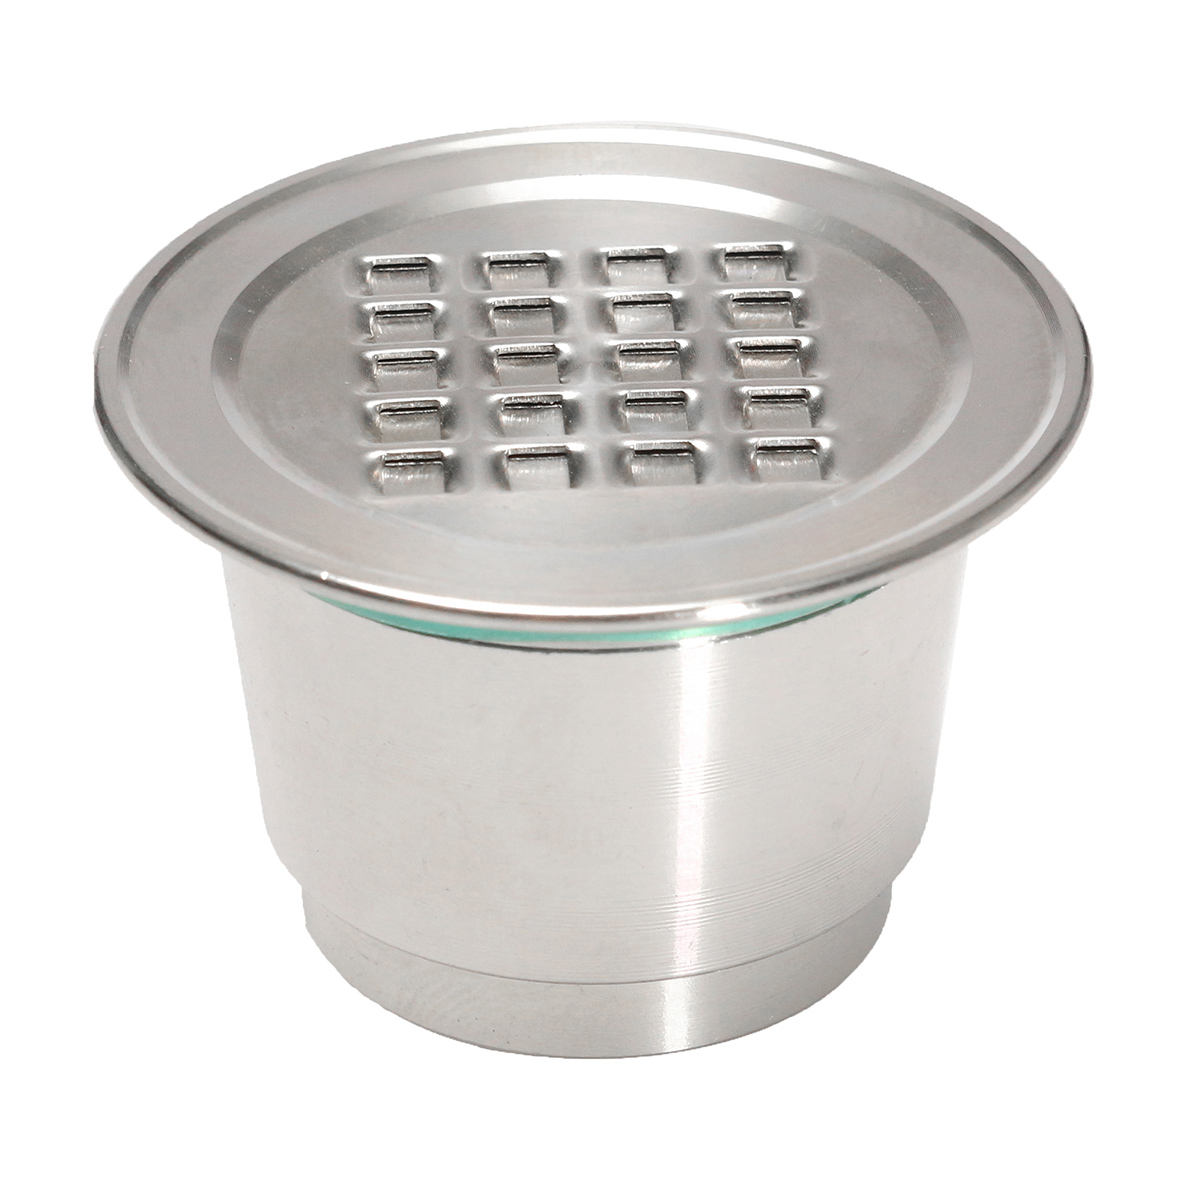 Upgraded Stainless Steel Reusable Refillable Coffee Capsule Cup With CM Lids For Nespresso Machine